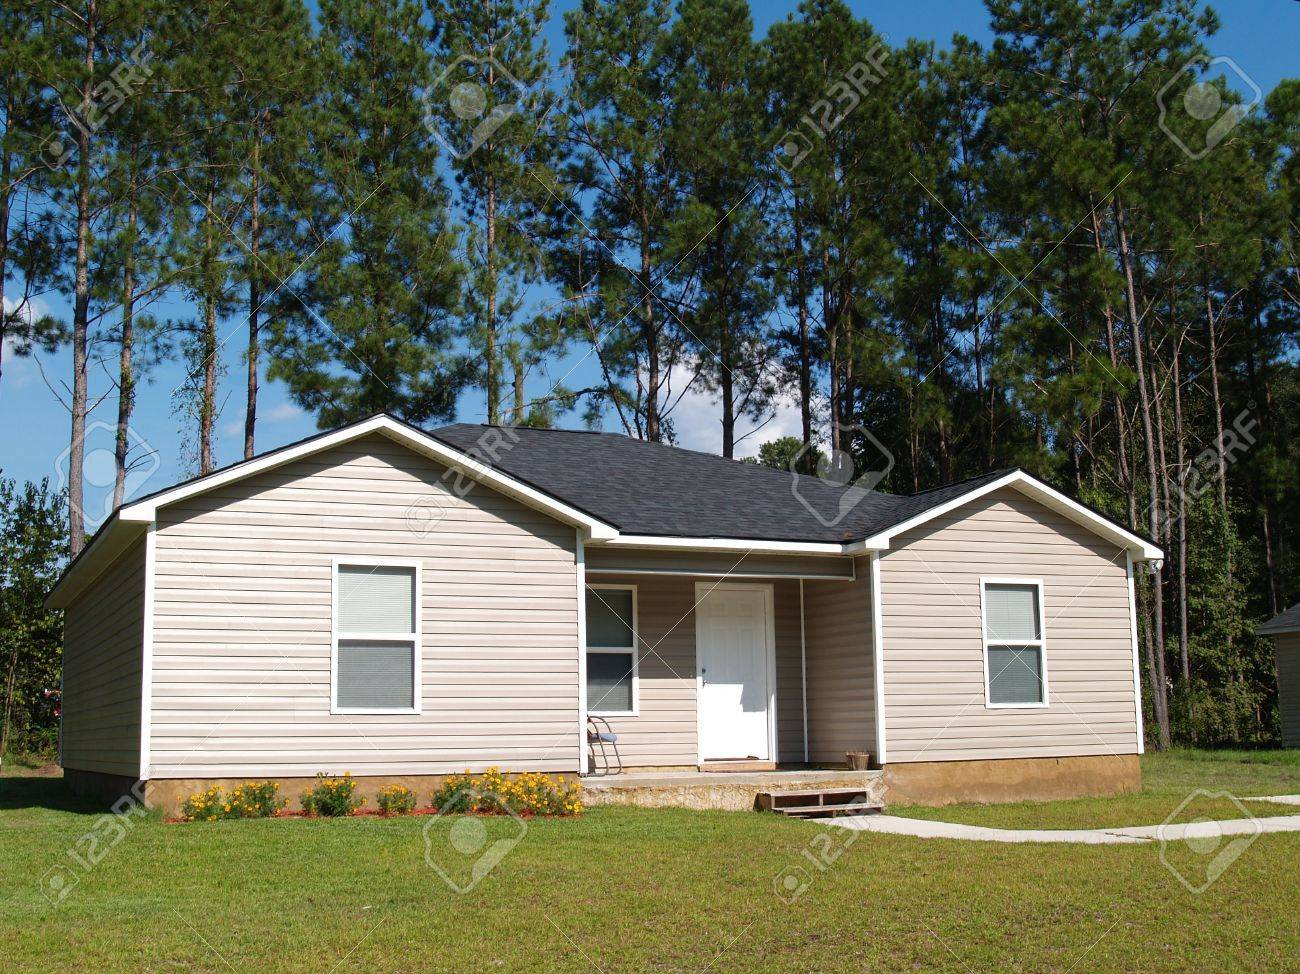 Small low income home with tan vinyl siding. - 6511115